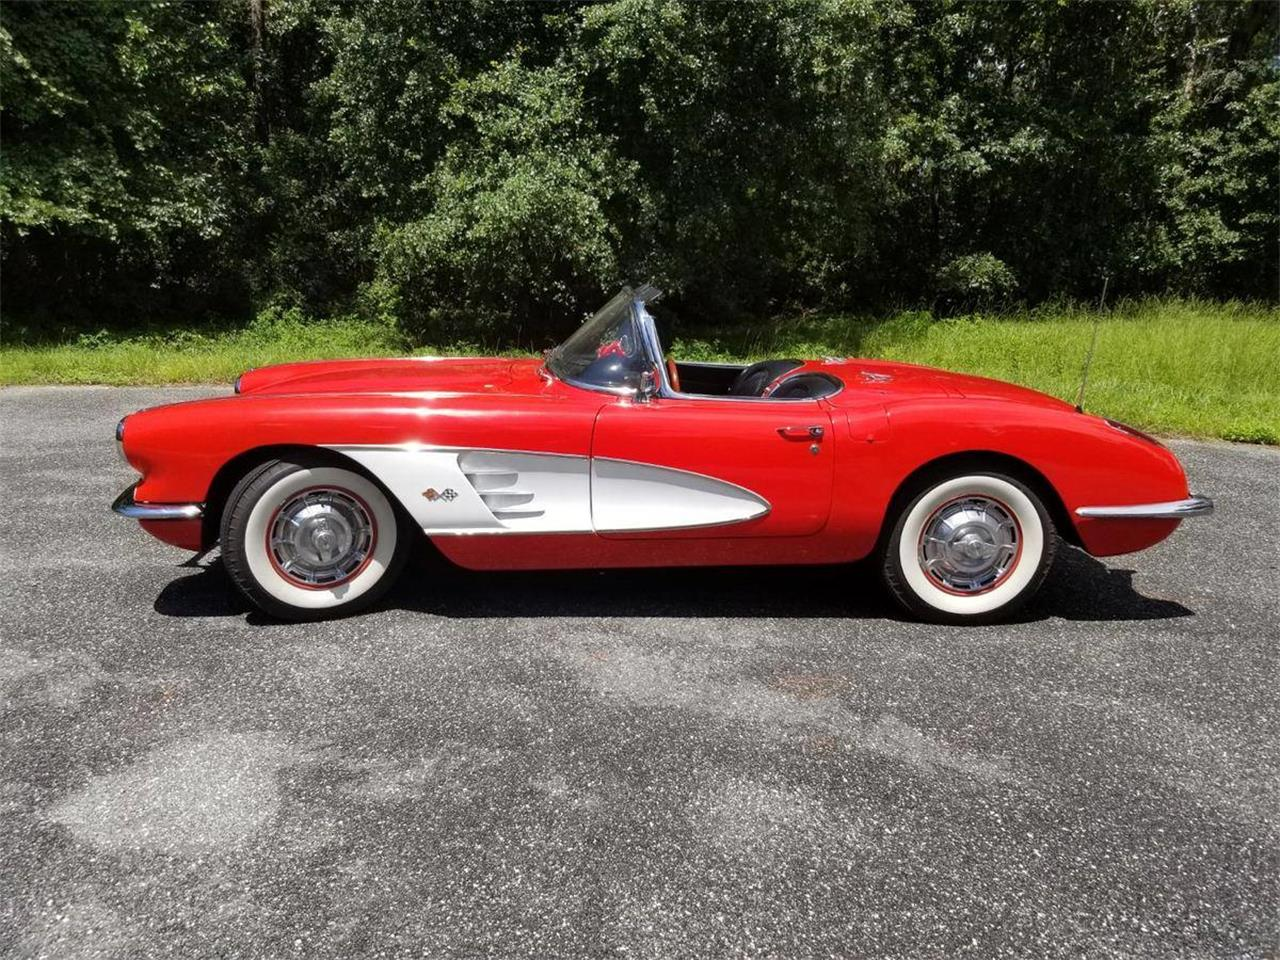 1960 Chevrolet Corvette (CC-1251715) for sale in lake city, Florida